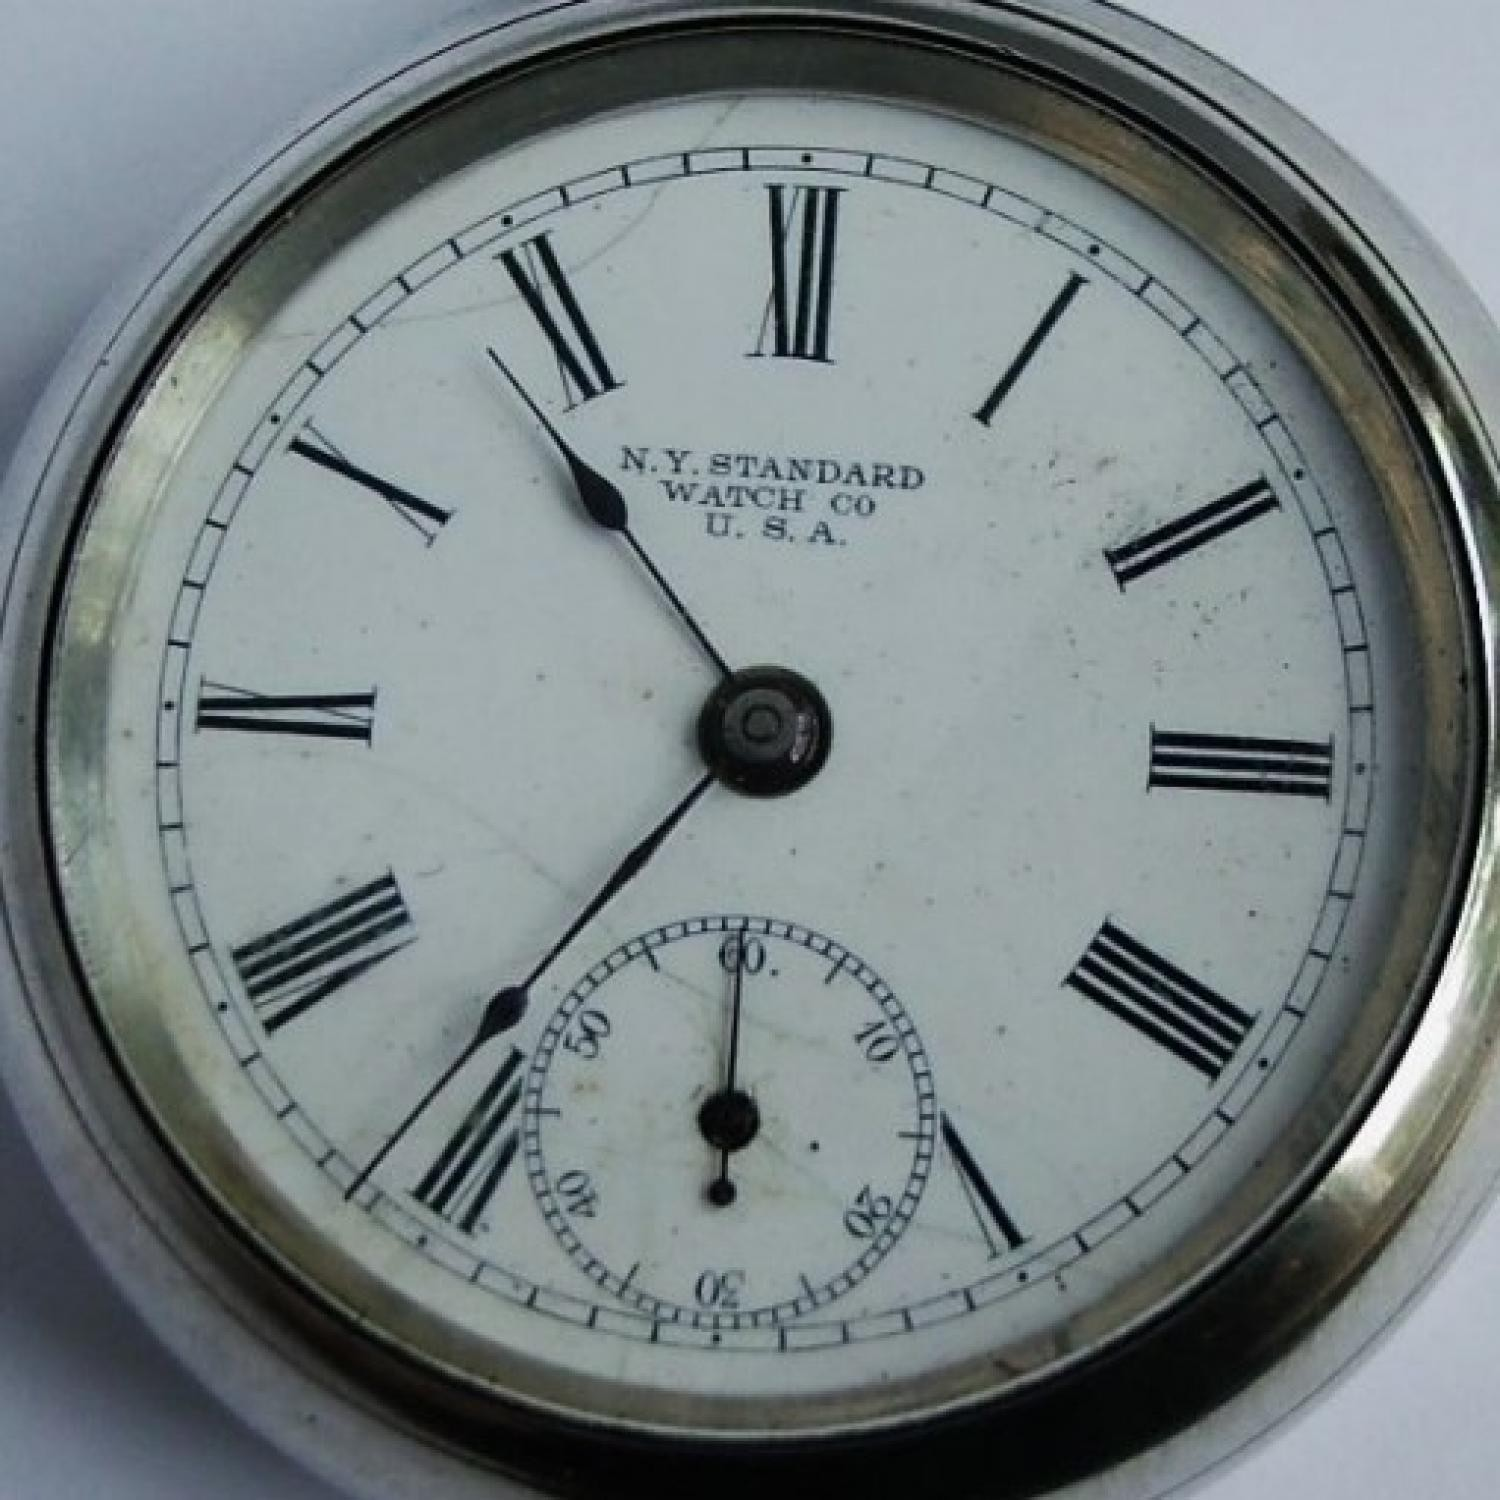 Image of New York Standard Watch Co.  #1472658 Dial